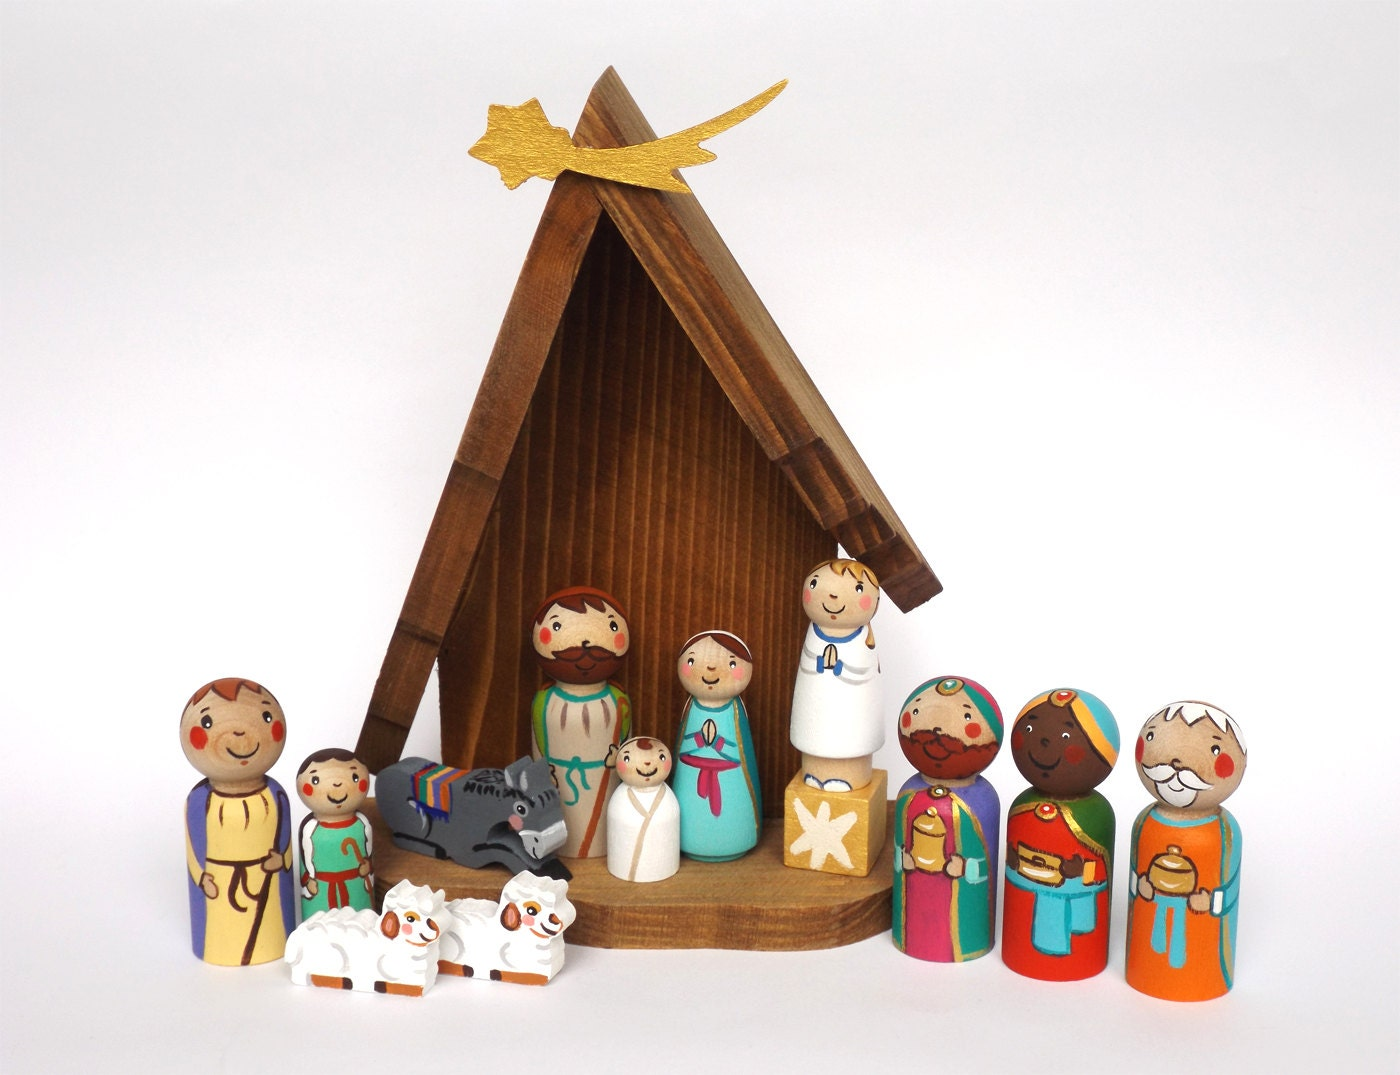 Childrens Nativity Set For Kids Nativity Set By. Ideas For Christmas Cake Decorations. The Worst Christmas Decorations Ever. Christmas Lights Ideas Bedroom. Christmas Tree With Silver Decorations. Easy Christmas Cake Decorations. White Turtle Dove Christmas Decorations. Fibre Optic Christmas Decorations Canada. Decorate Christmas Tree Professionally